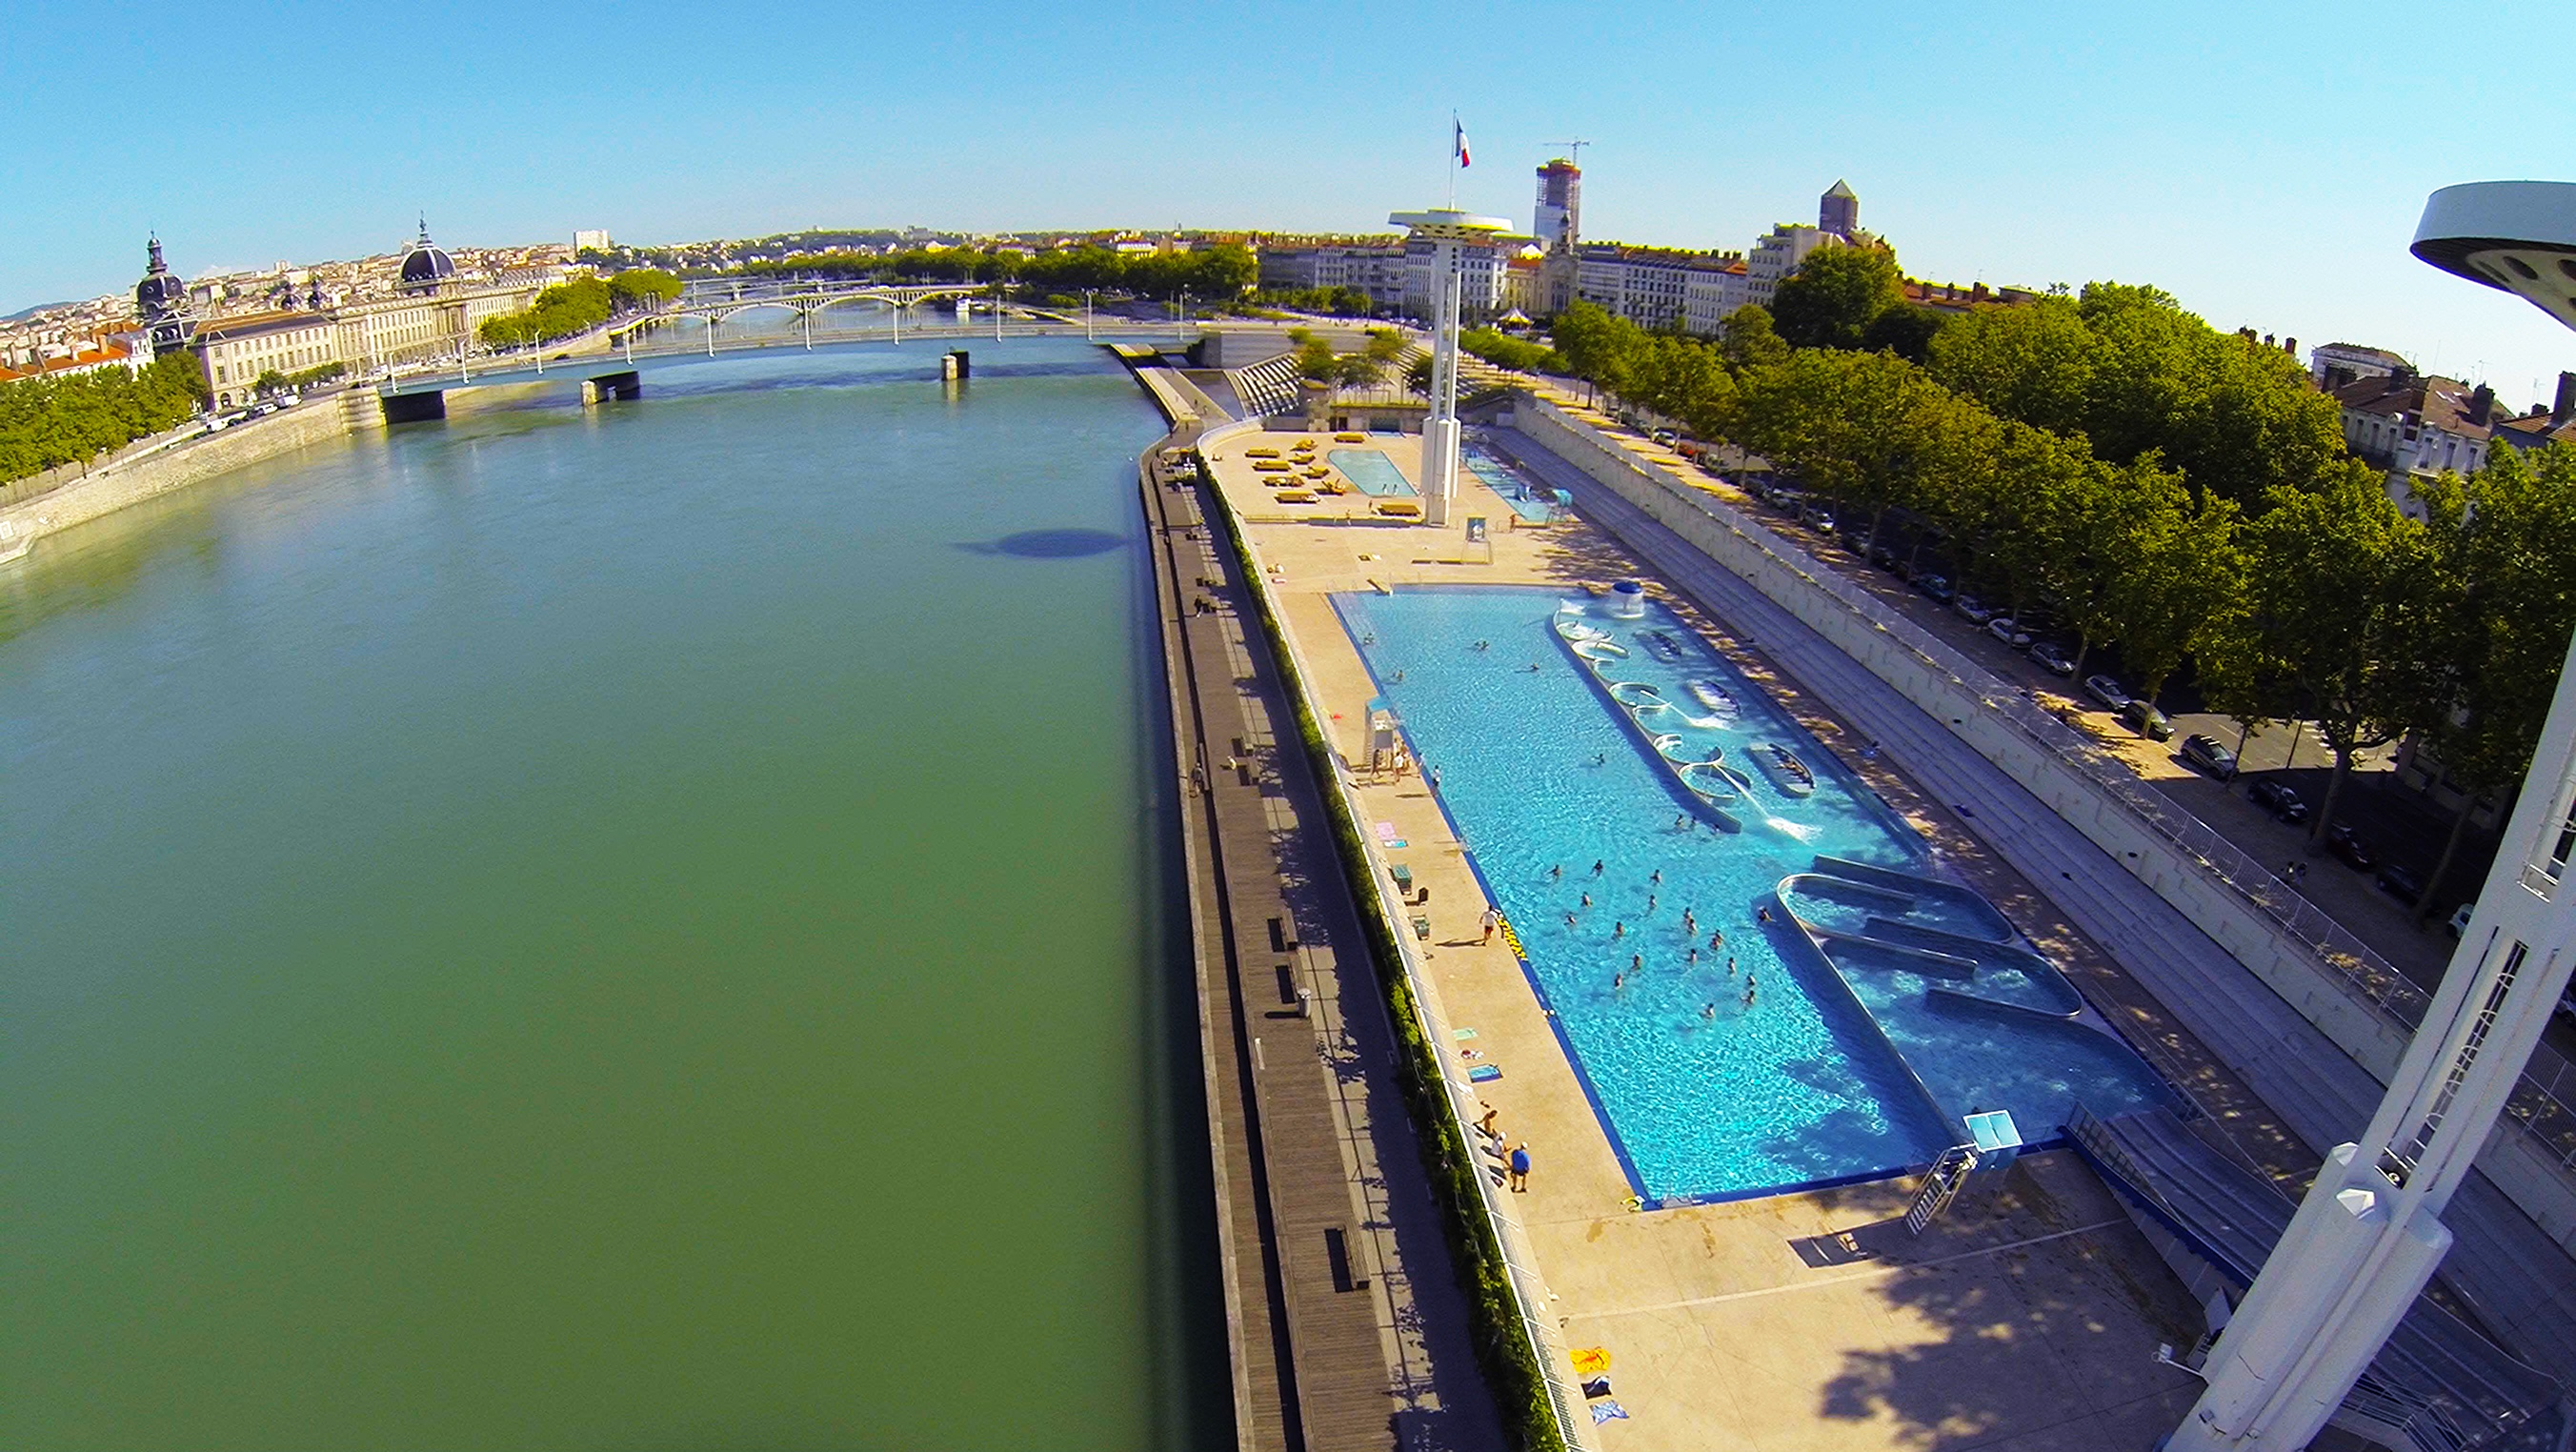 Piscine du rhone dronestagram for Piscine du rhone